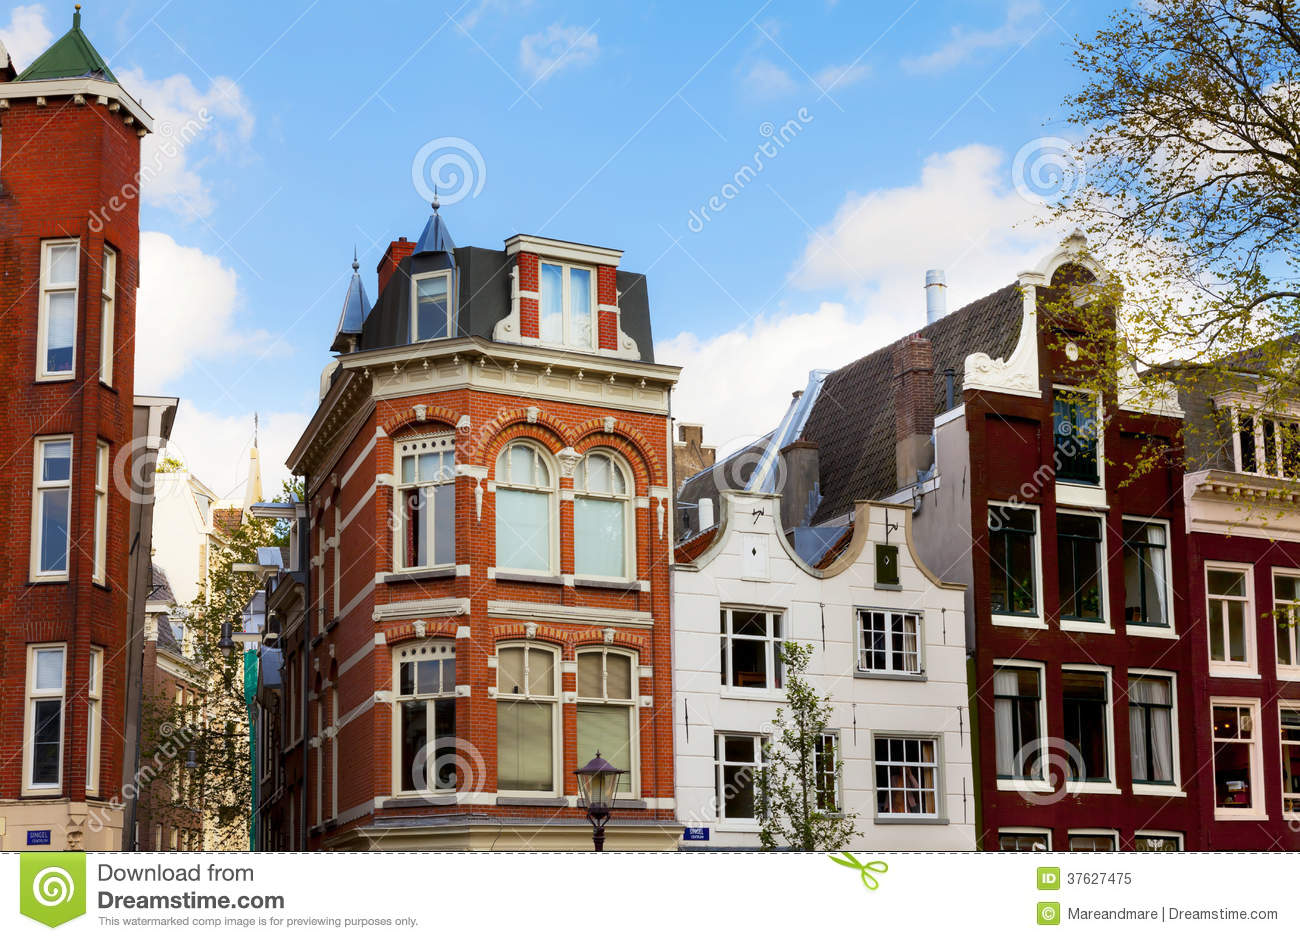 Dutch house royalty free stock photo image 37627475 for Dutch house